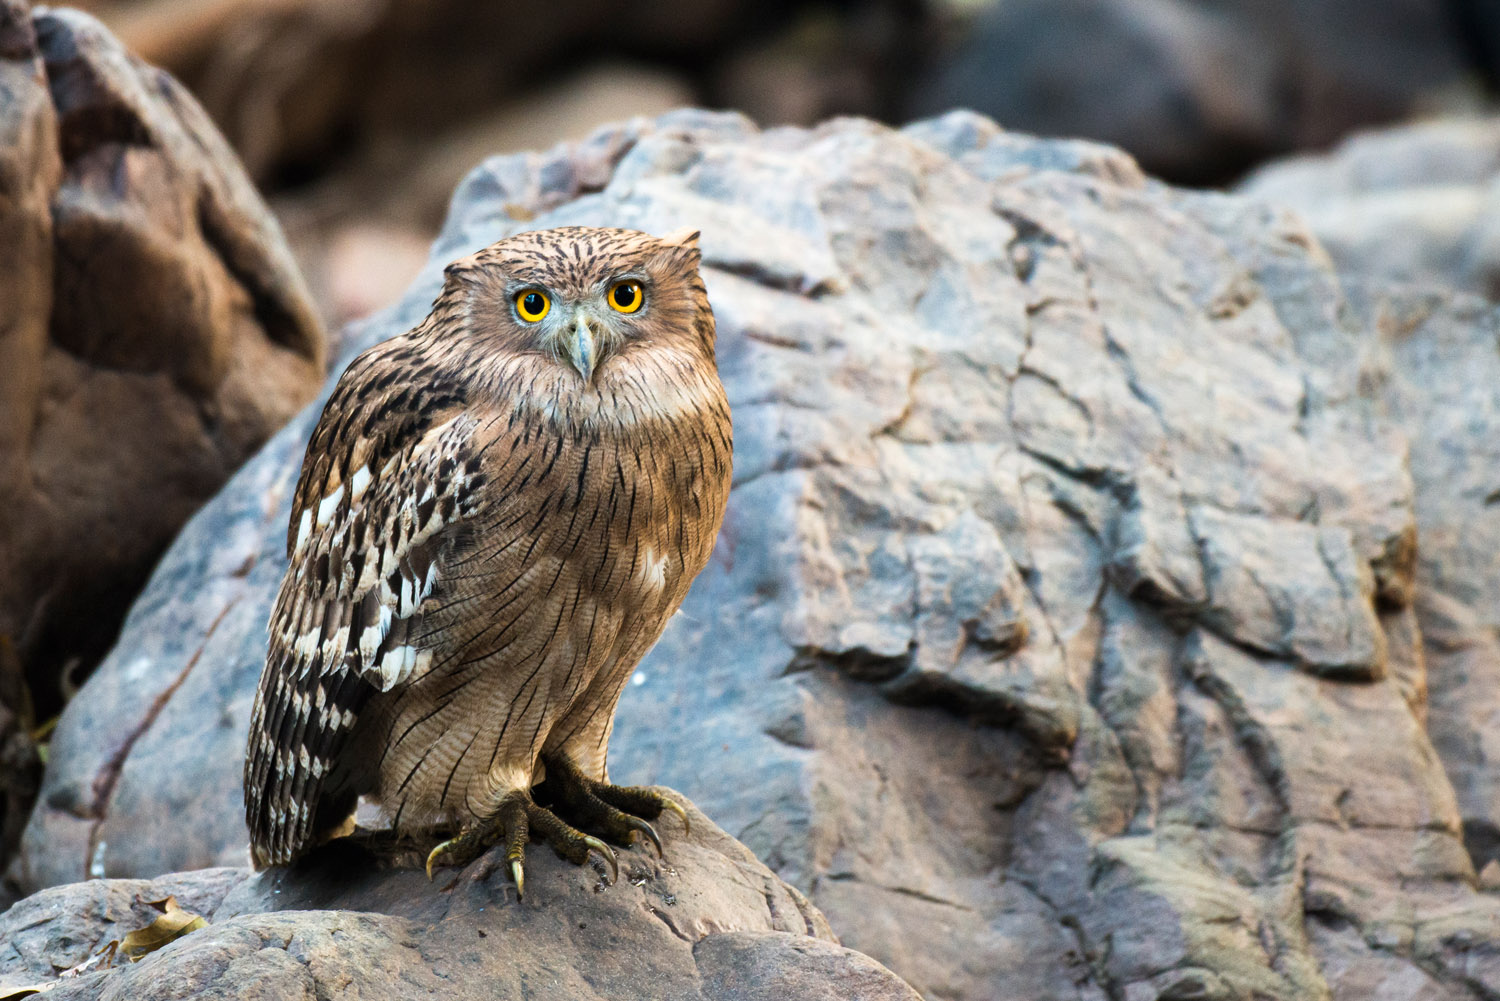 Brown fish-owl on rock, Ranthambhore National Park, Rajasthan, India